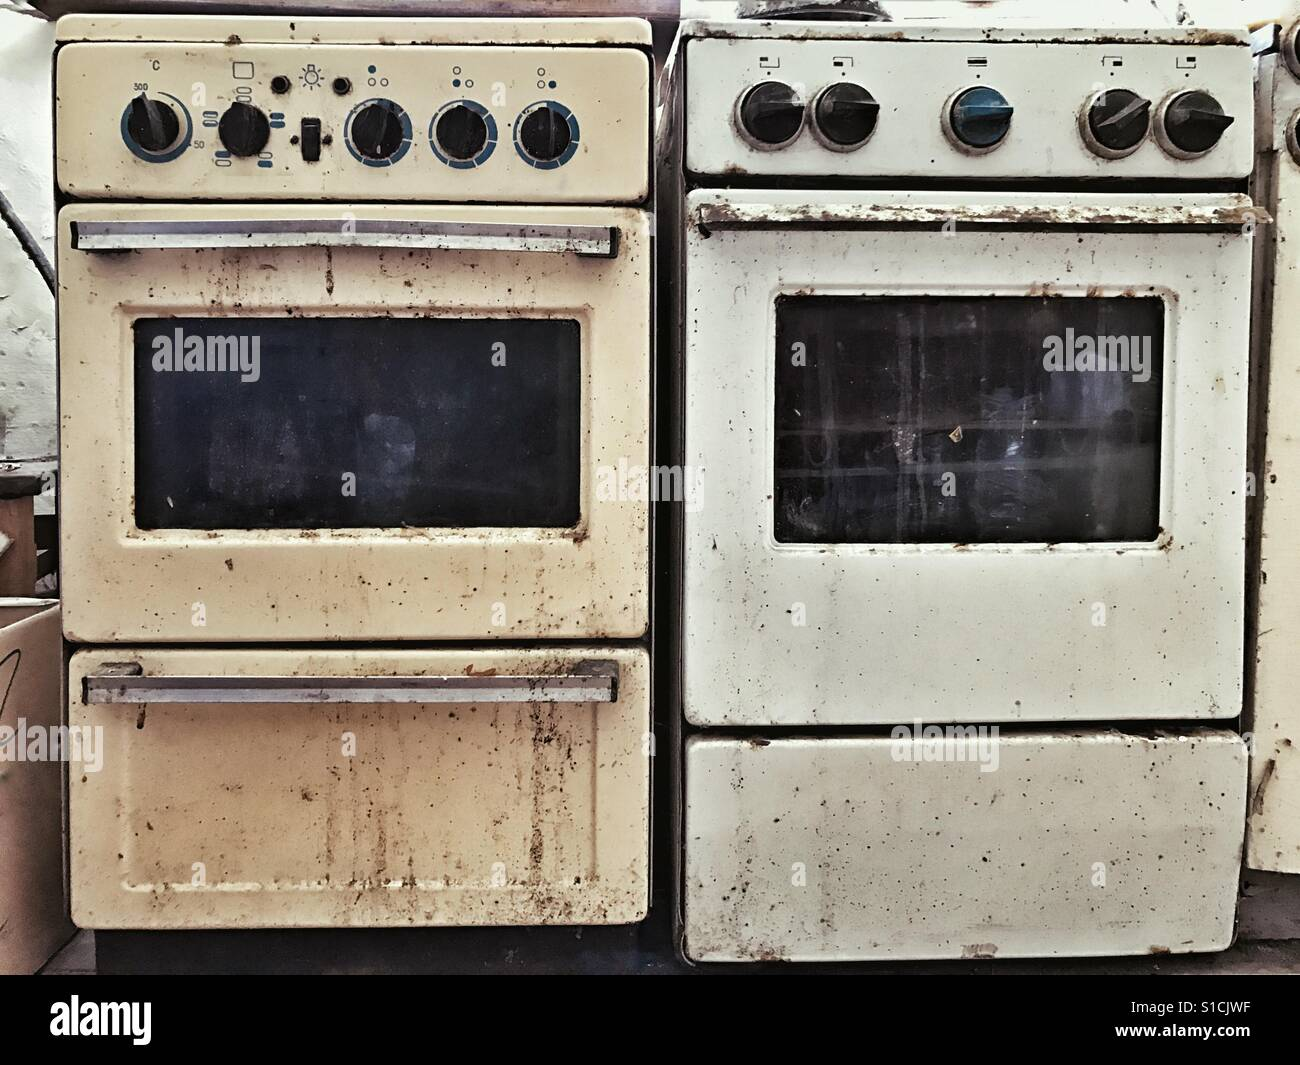 Old gas stoves - Stock Image